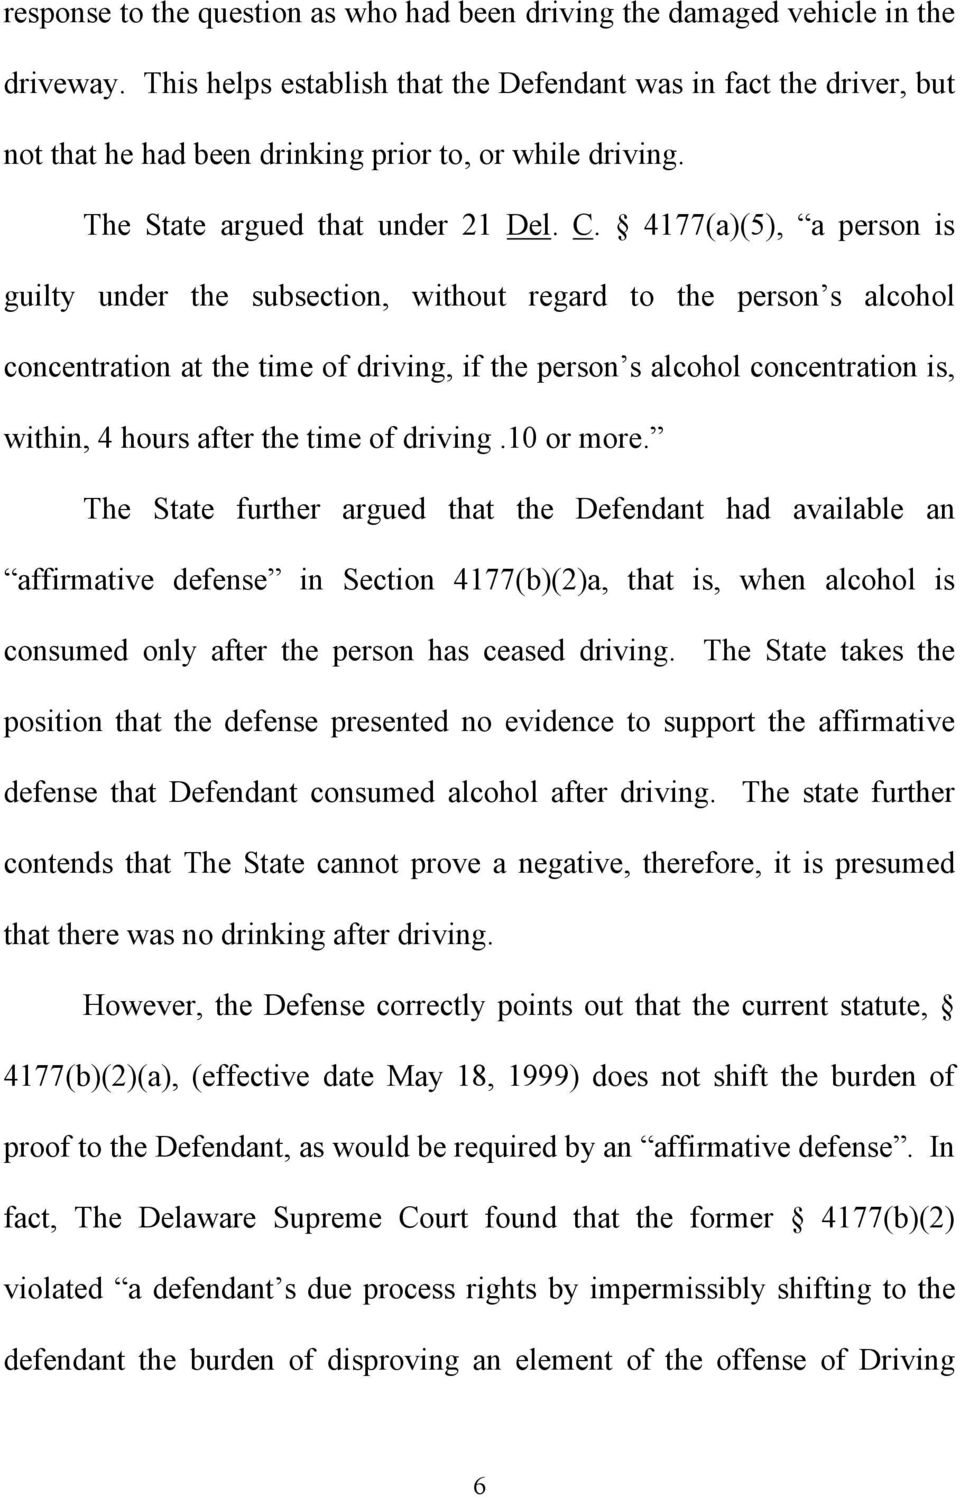 4177(a)(5), a person is guilty under the subsection, without regard to the person s alcohol concentration at the time of driving, if the person s alcohol concentration is, within, 4 hours after the